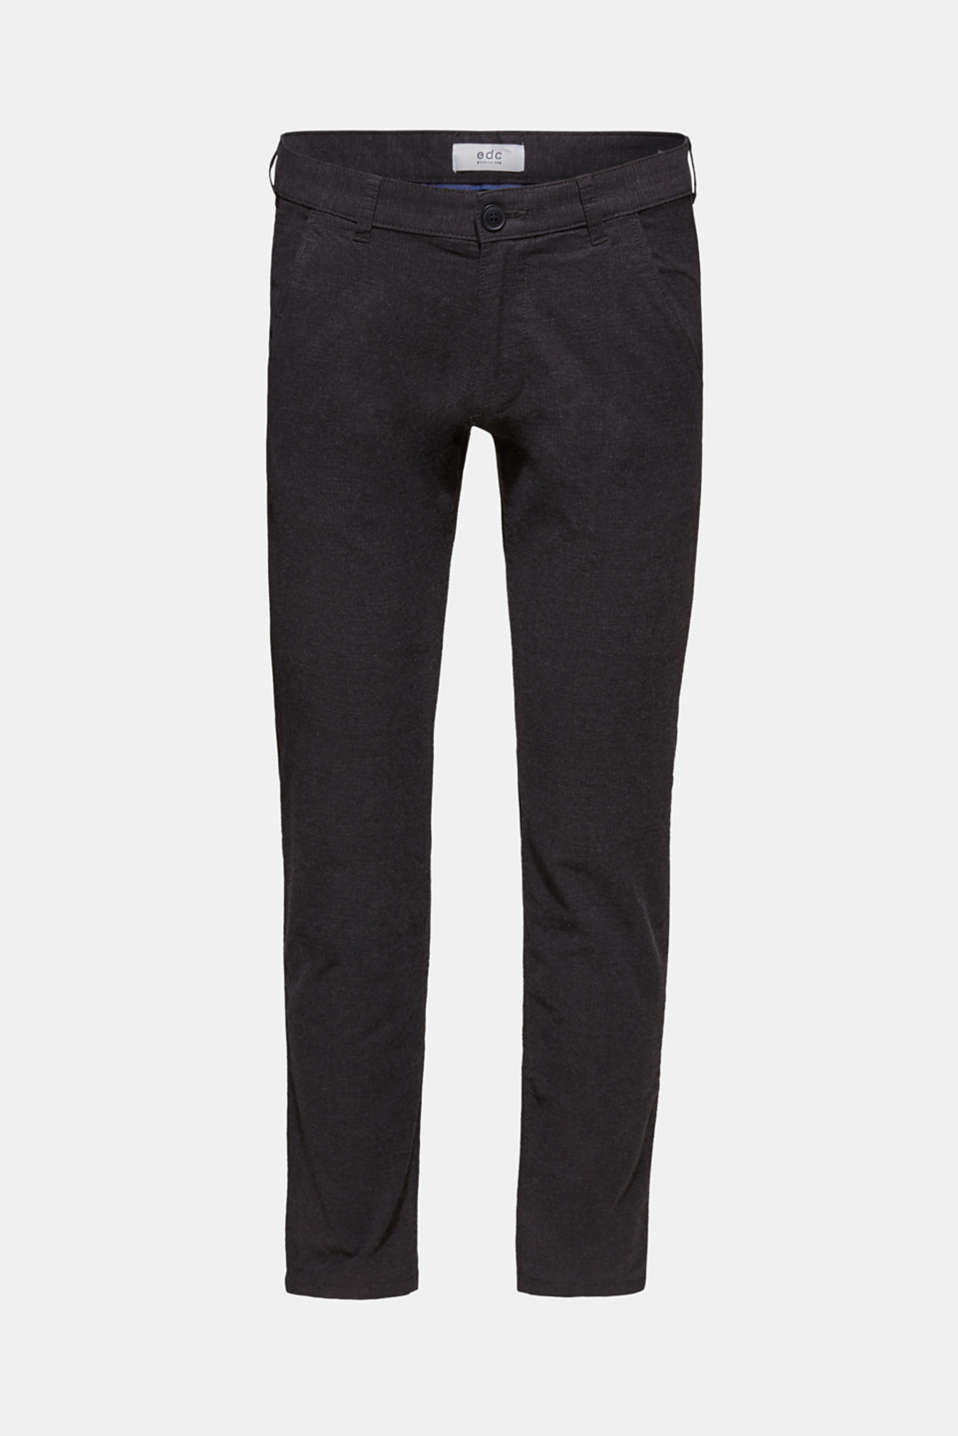 Pants woven Slim fit, ANTHRACITE, detail image number 7